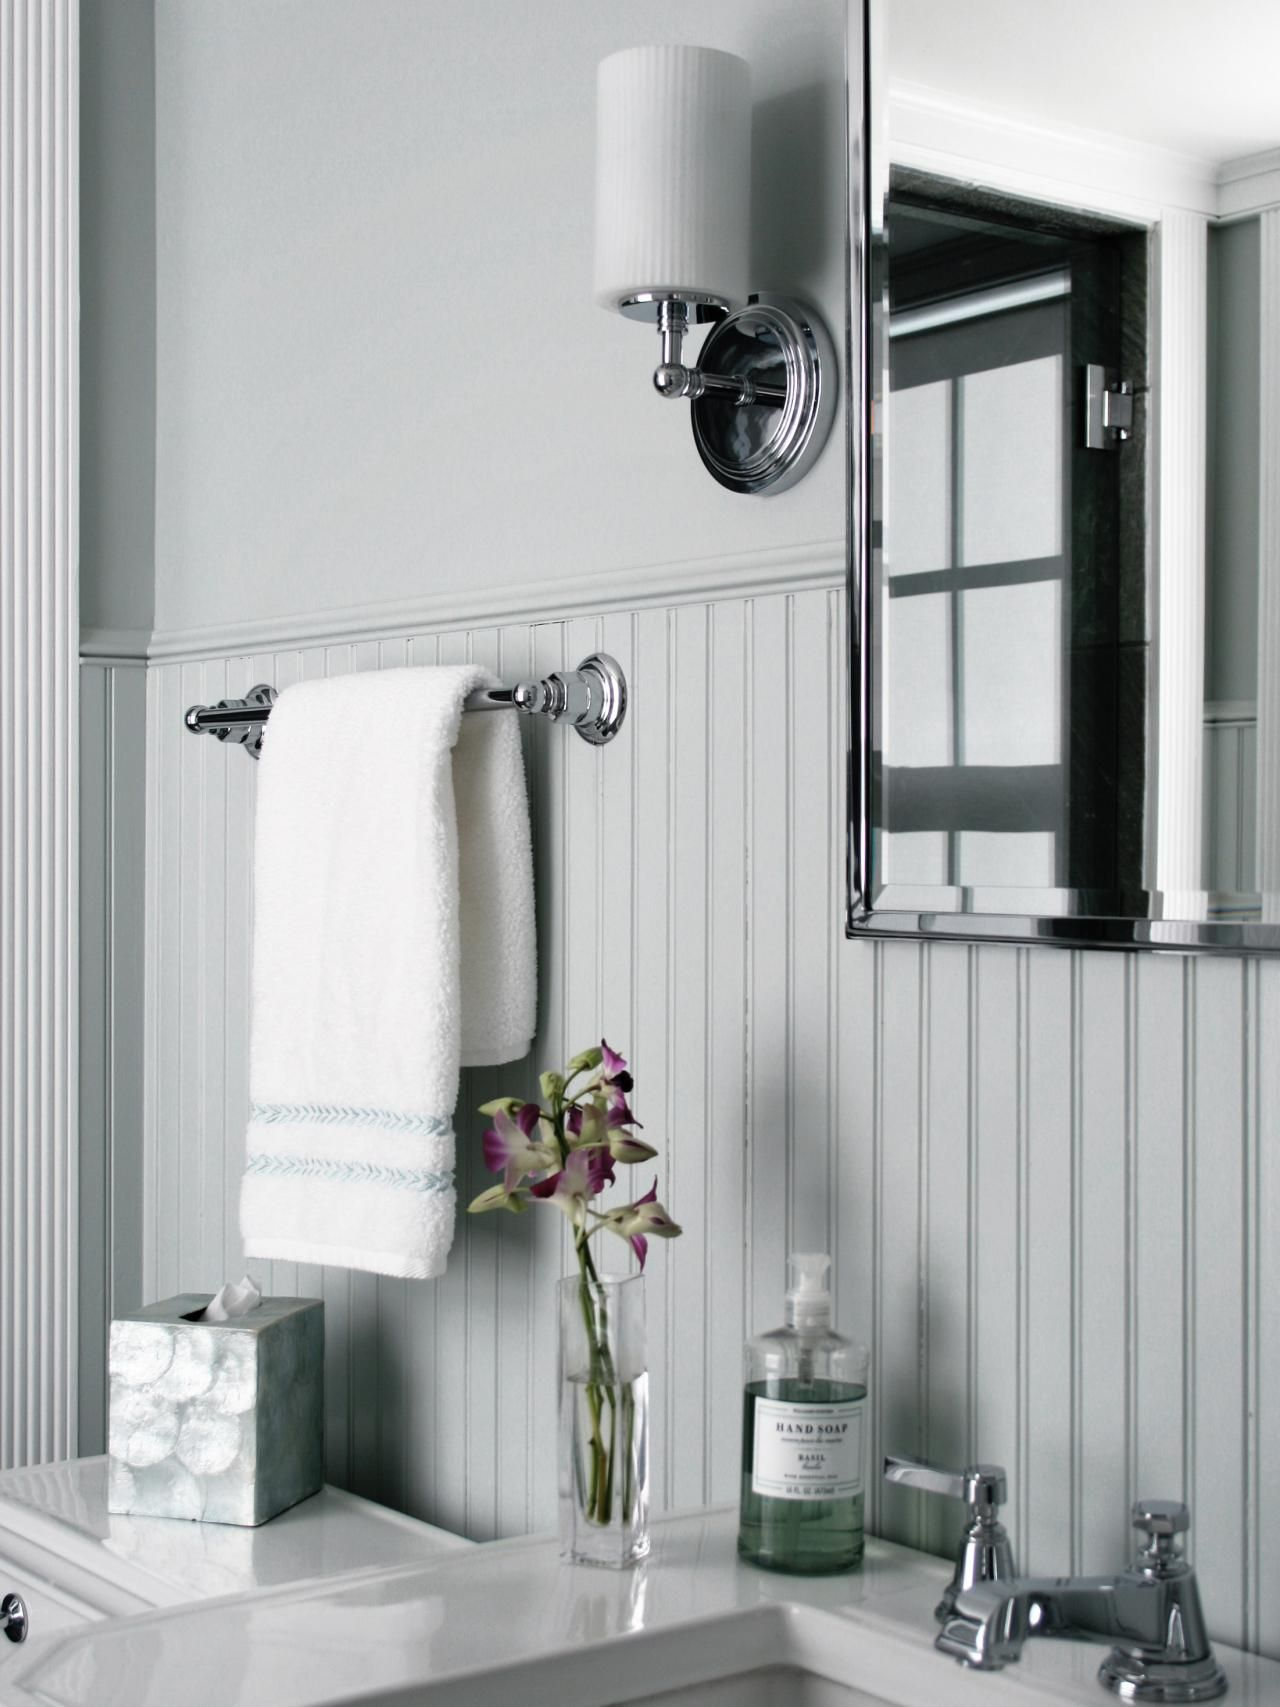 How to Cover Dated Bathroom Tile with Wainscoting | Beadboard ...